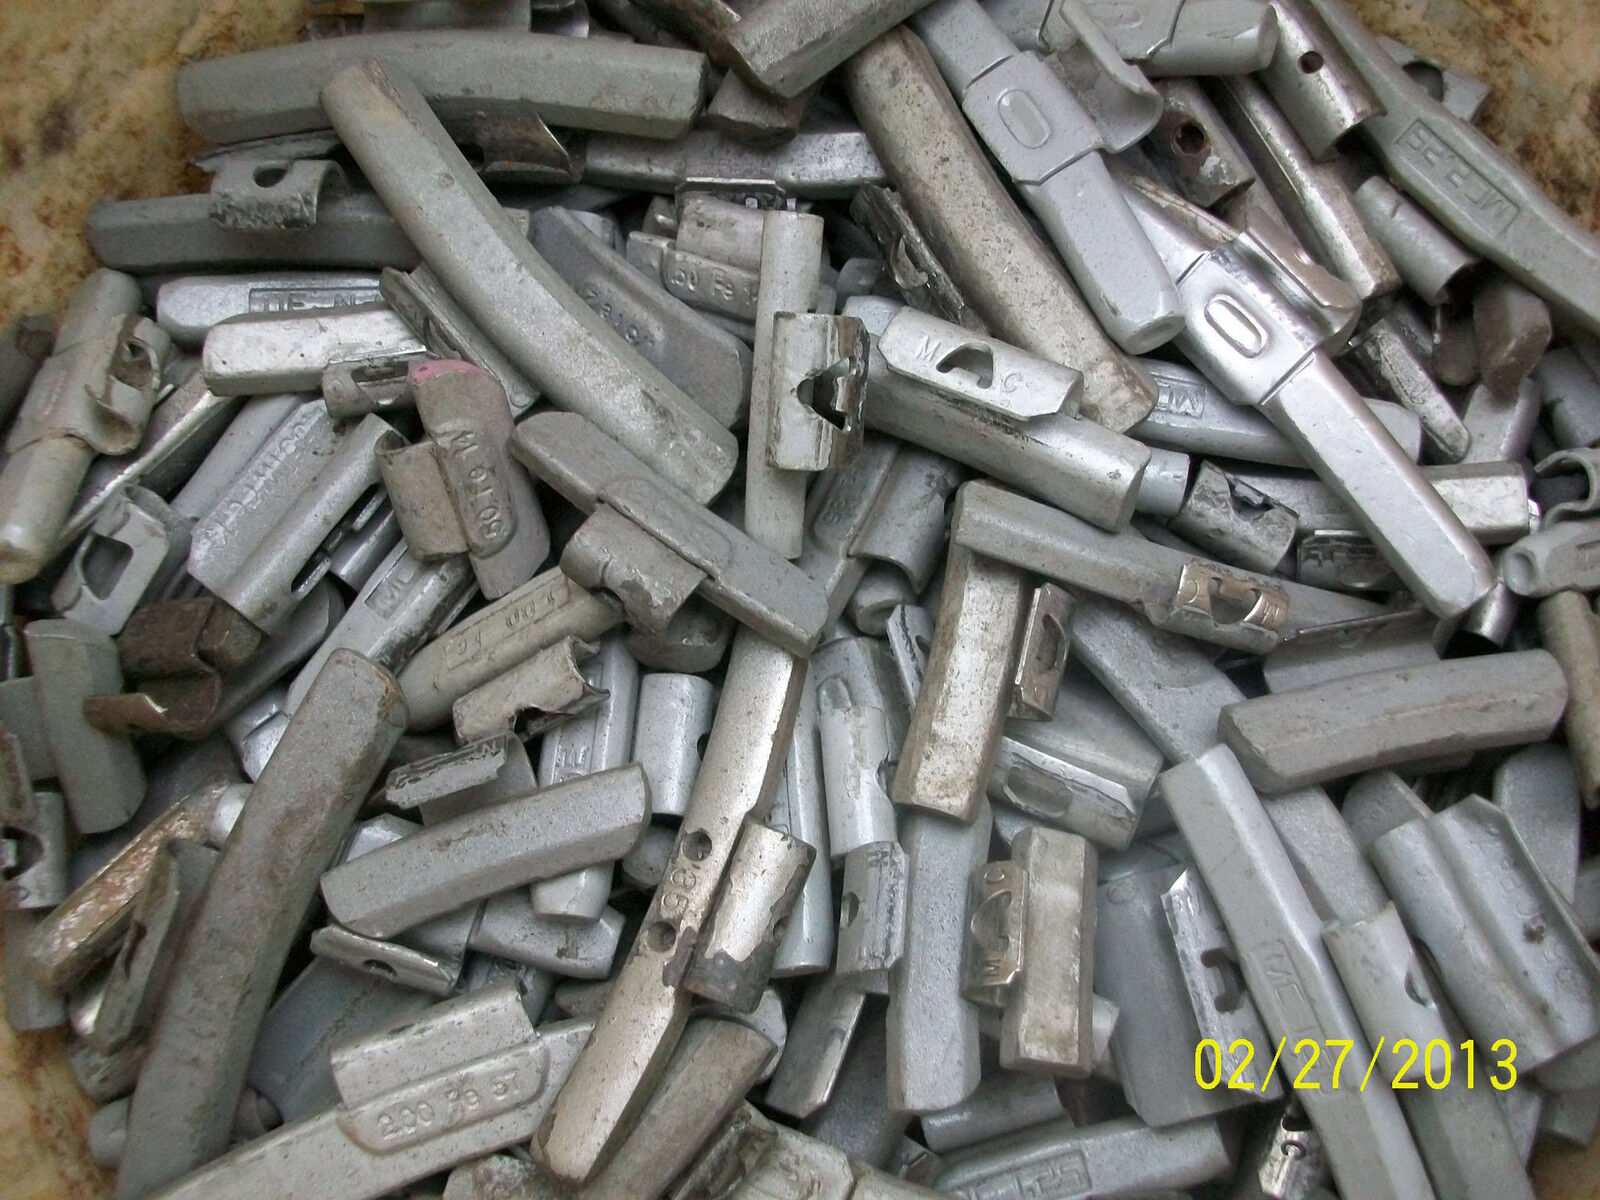 Wheel Weights Steel for Aluminum Alloy Rims 185 Piece to Re-use W/Nice Bonus!